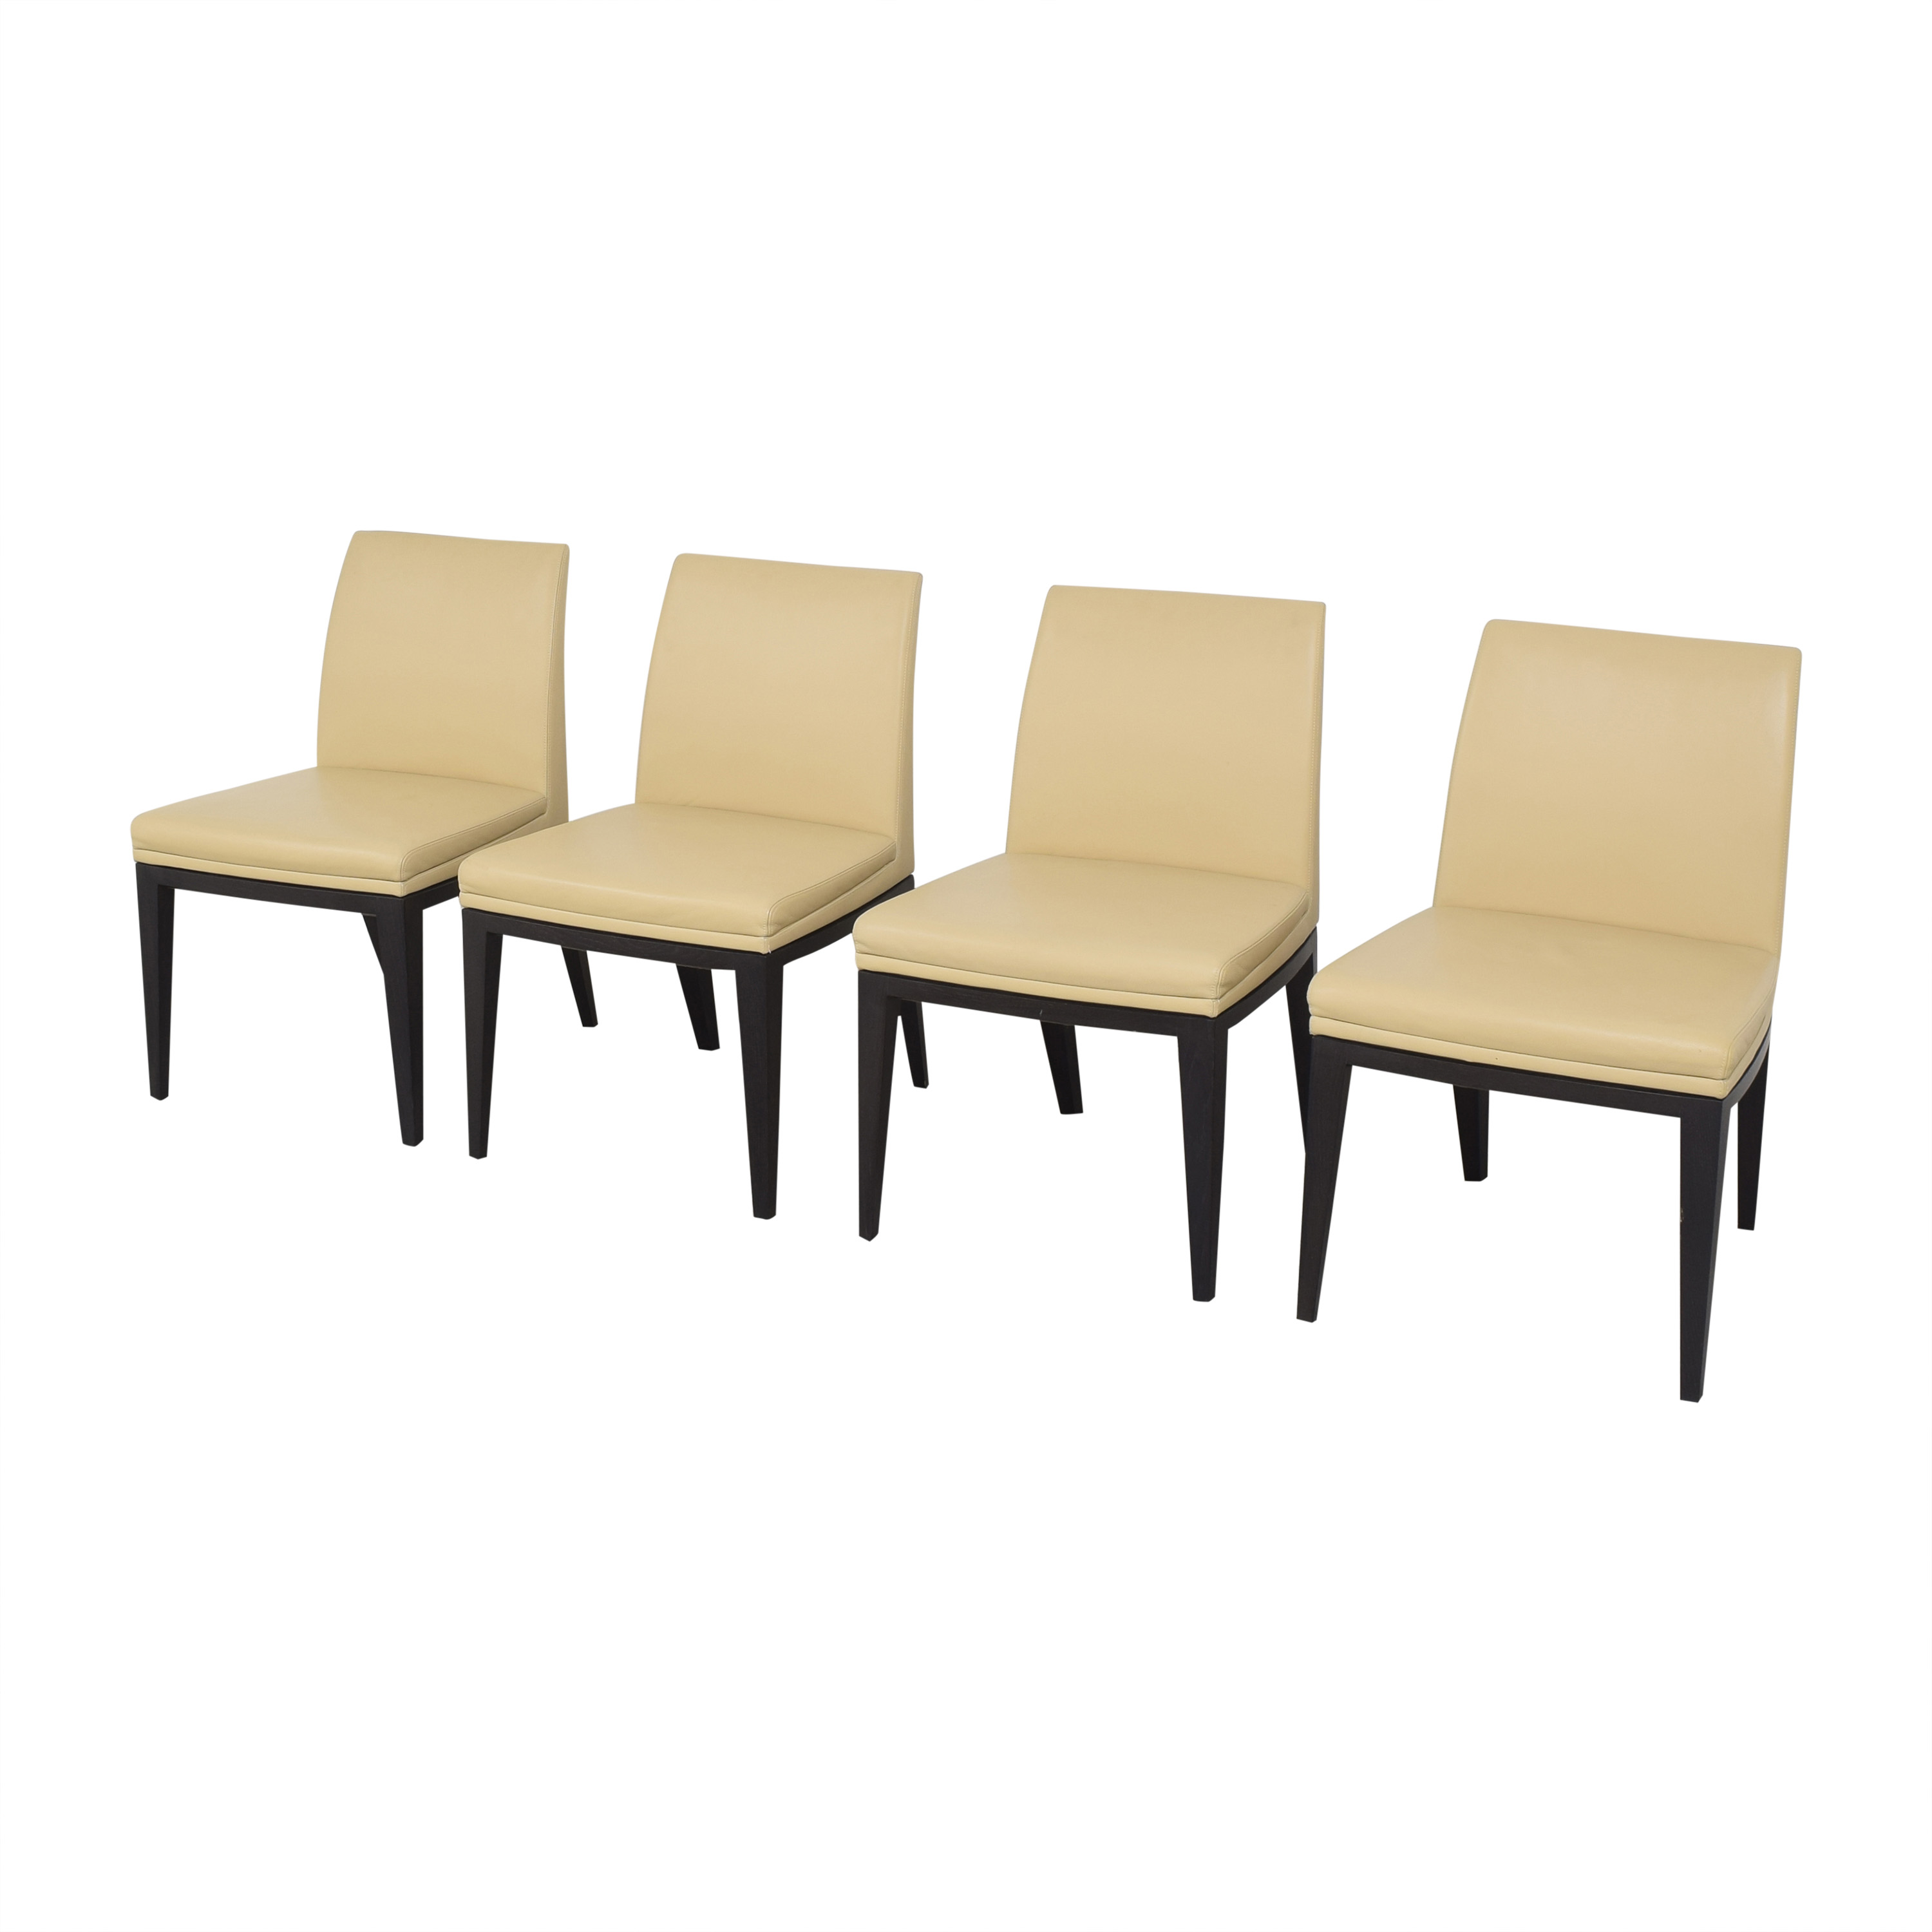 Maurice Villency Maurice Villency Dining Chairs dimensions